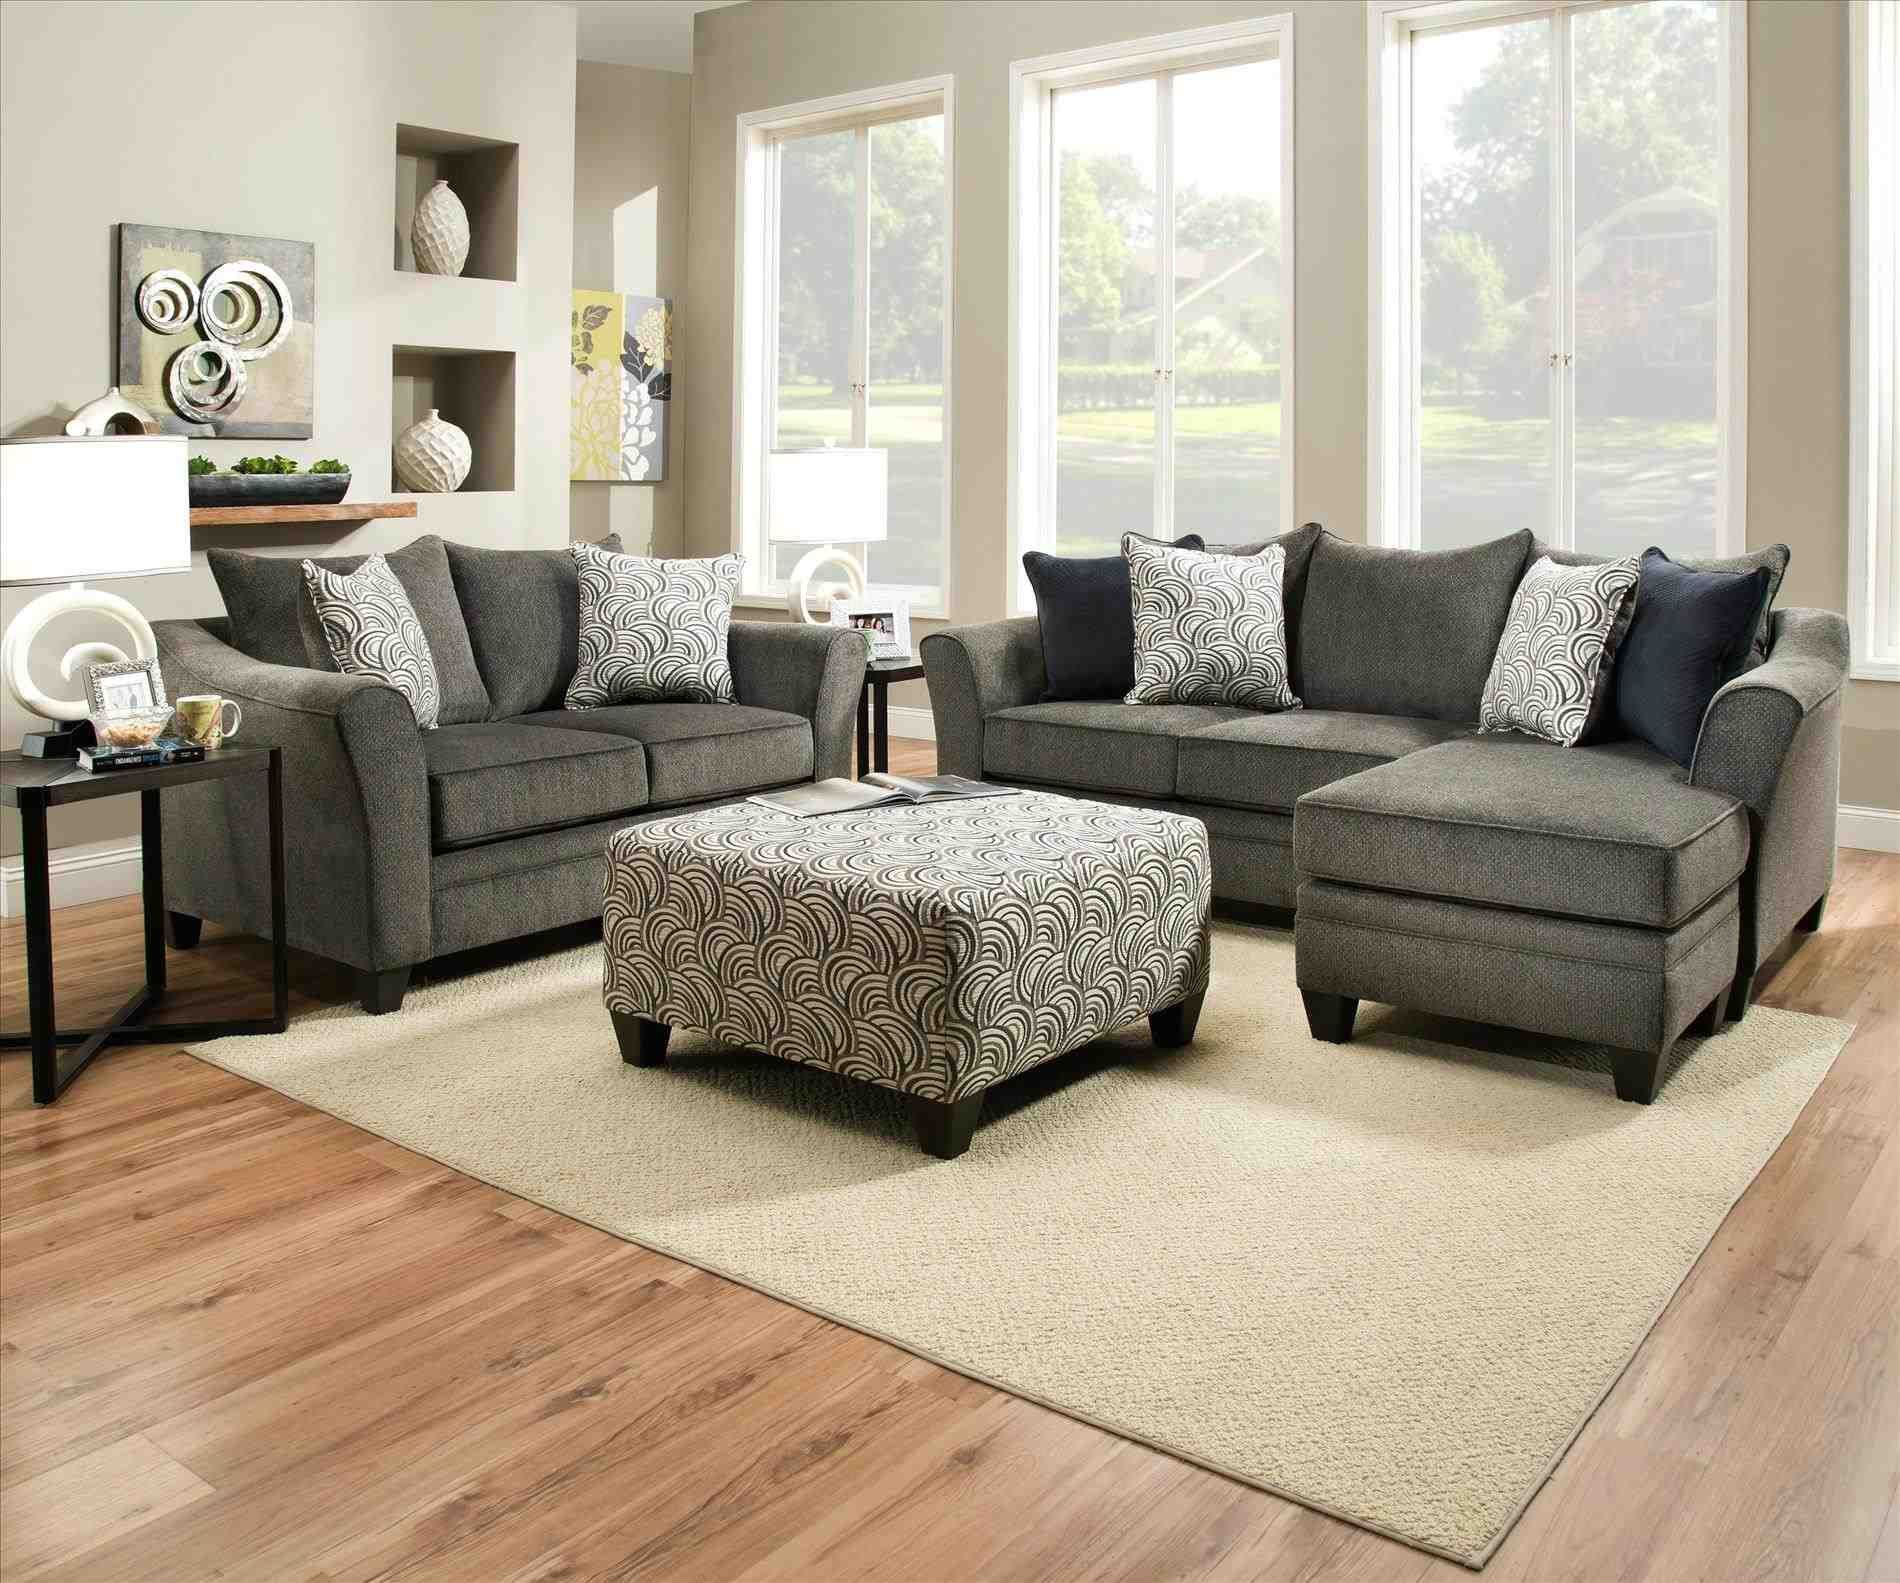 Kijiji Sofa On Sale Cheap Sectionals London Ontario What To Buy Author Archives